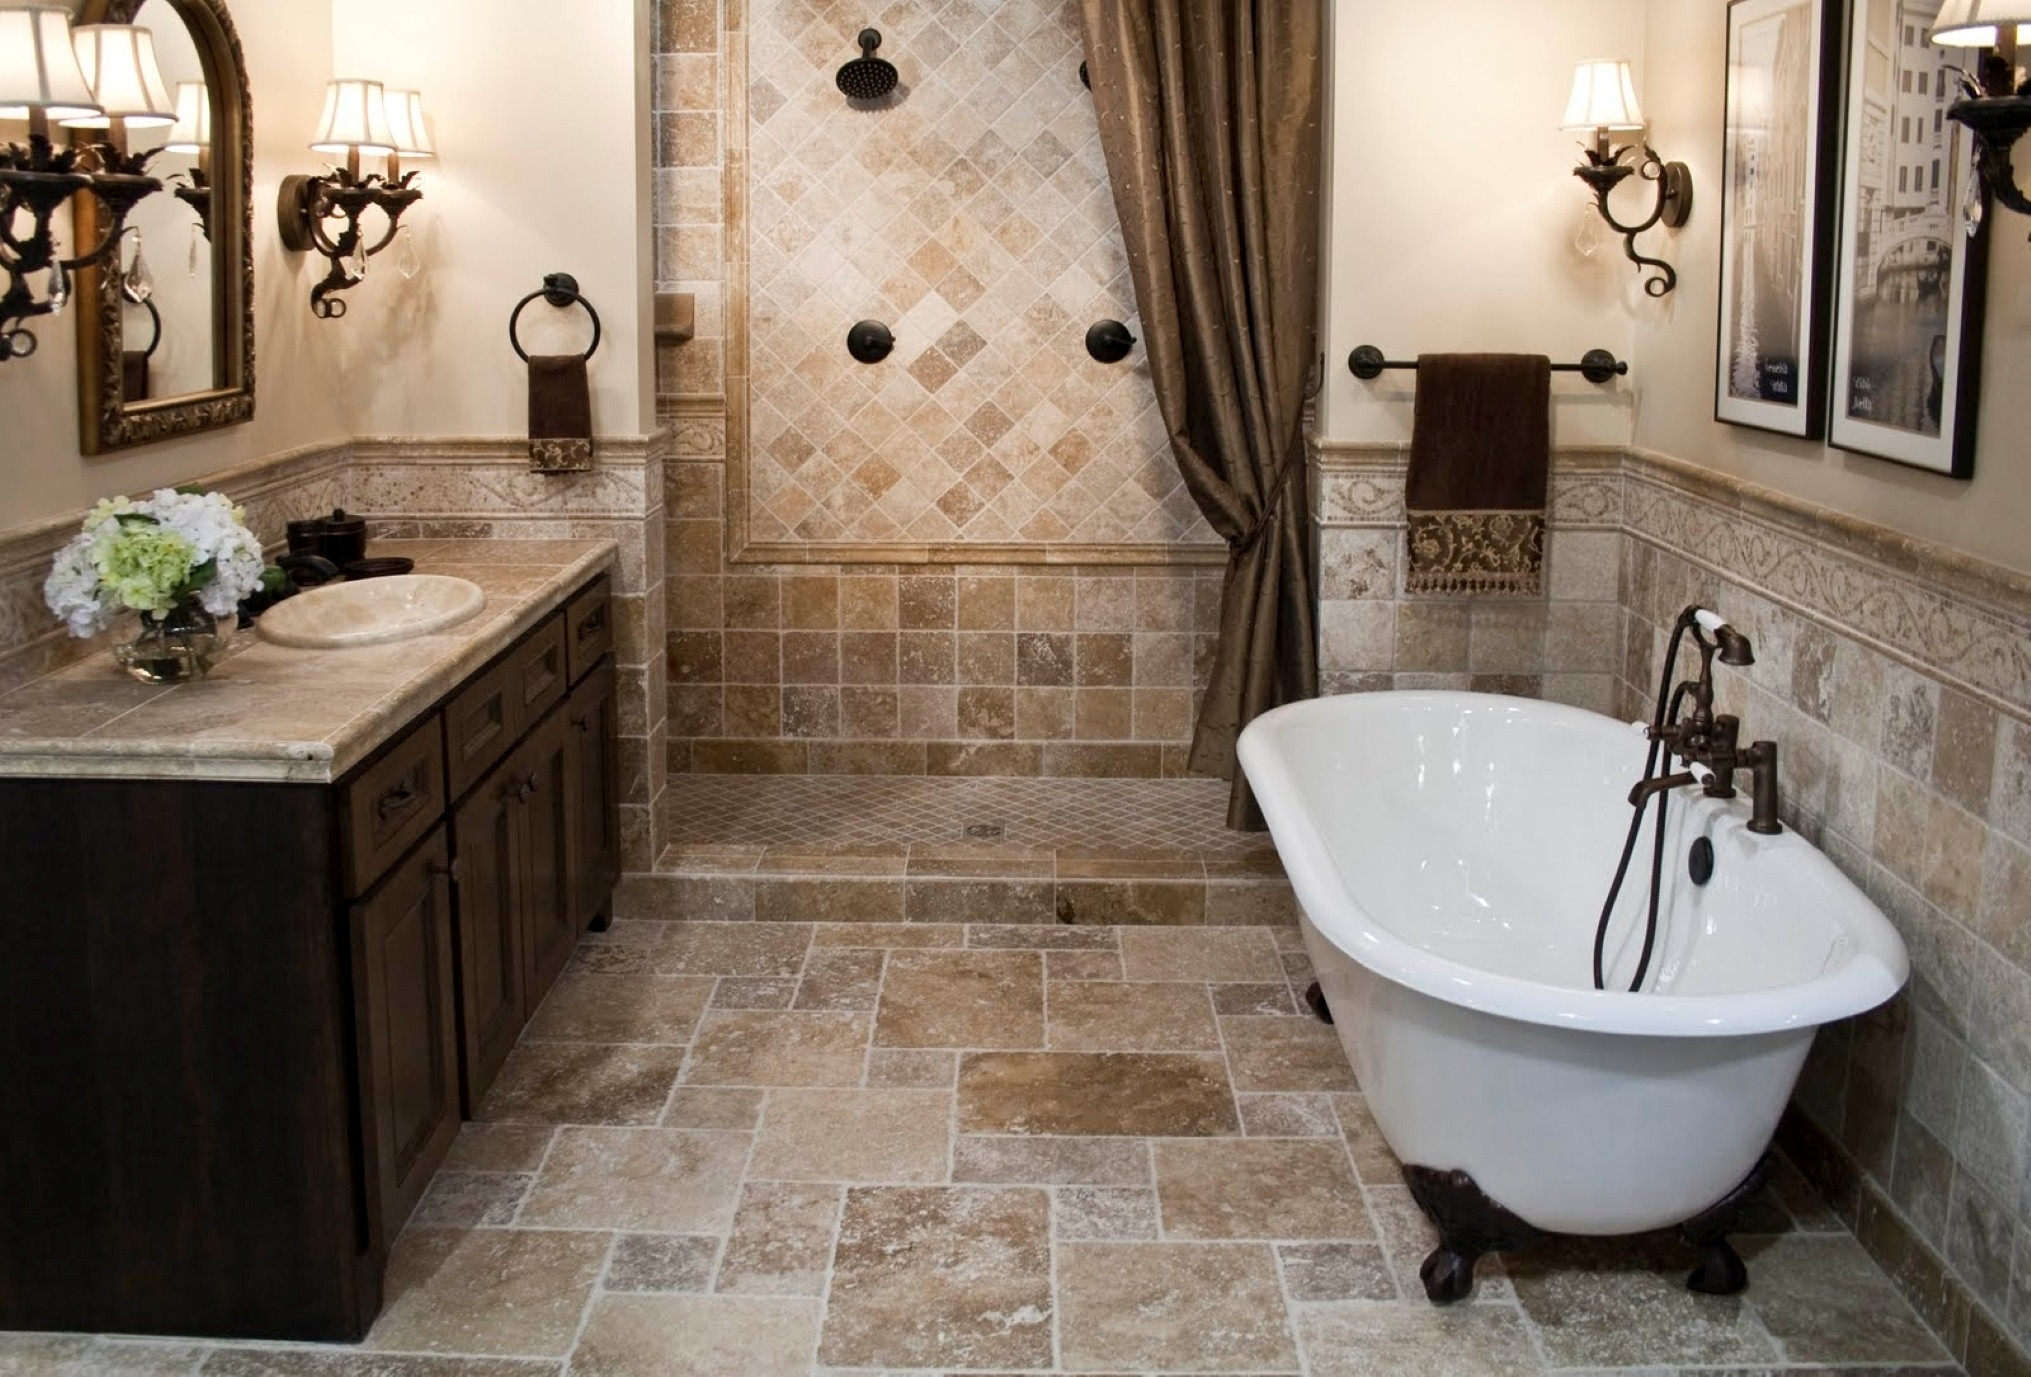 Stylish Bathroom Renovations For Bathroom Design Ideas With Tens Of Pictures Of Prepossessing Bathroom To Inspire You (View 2 of 23)